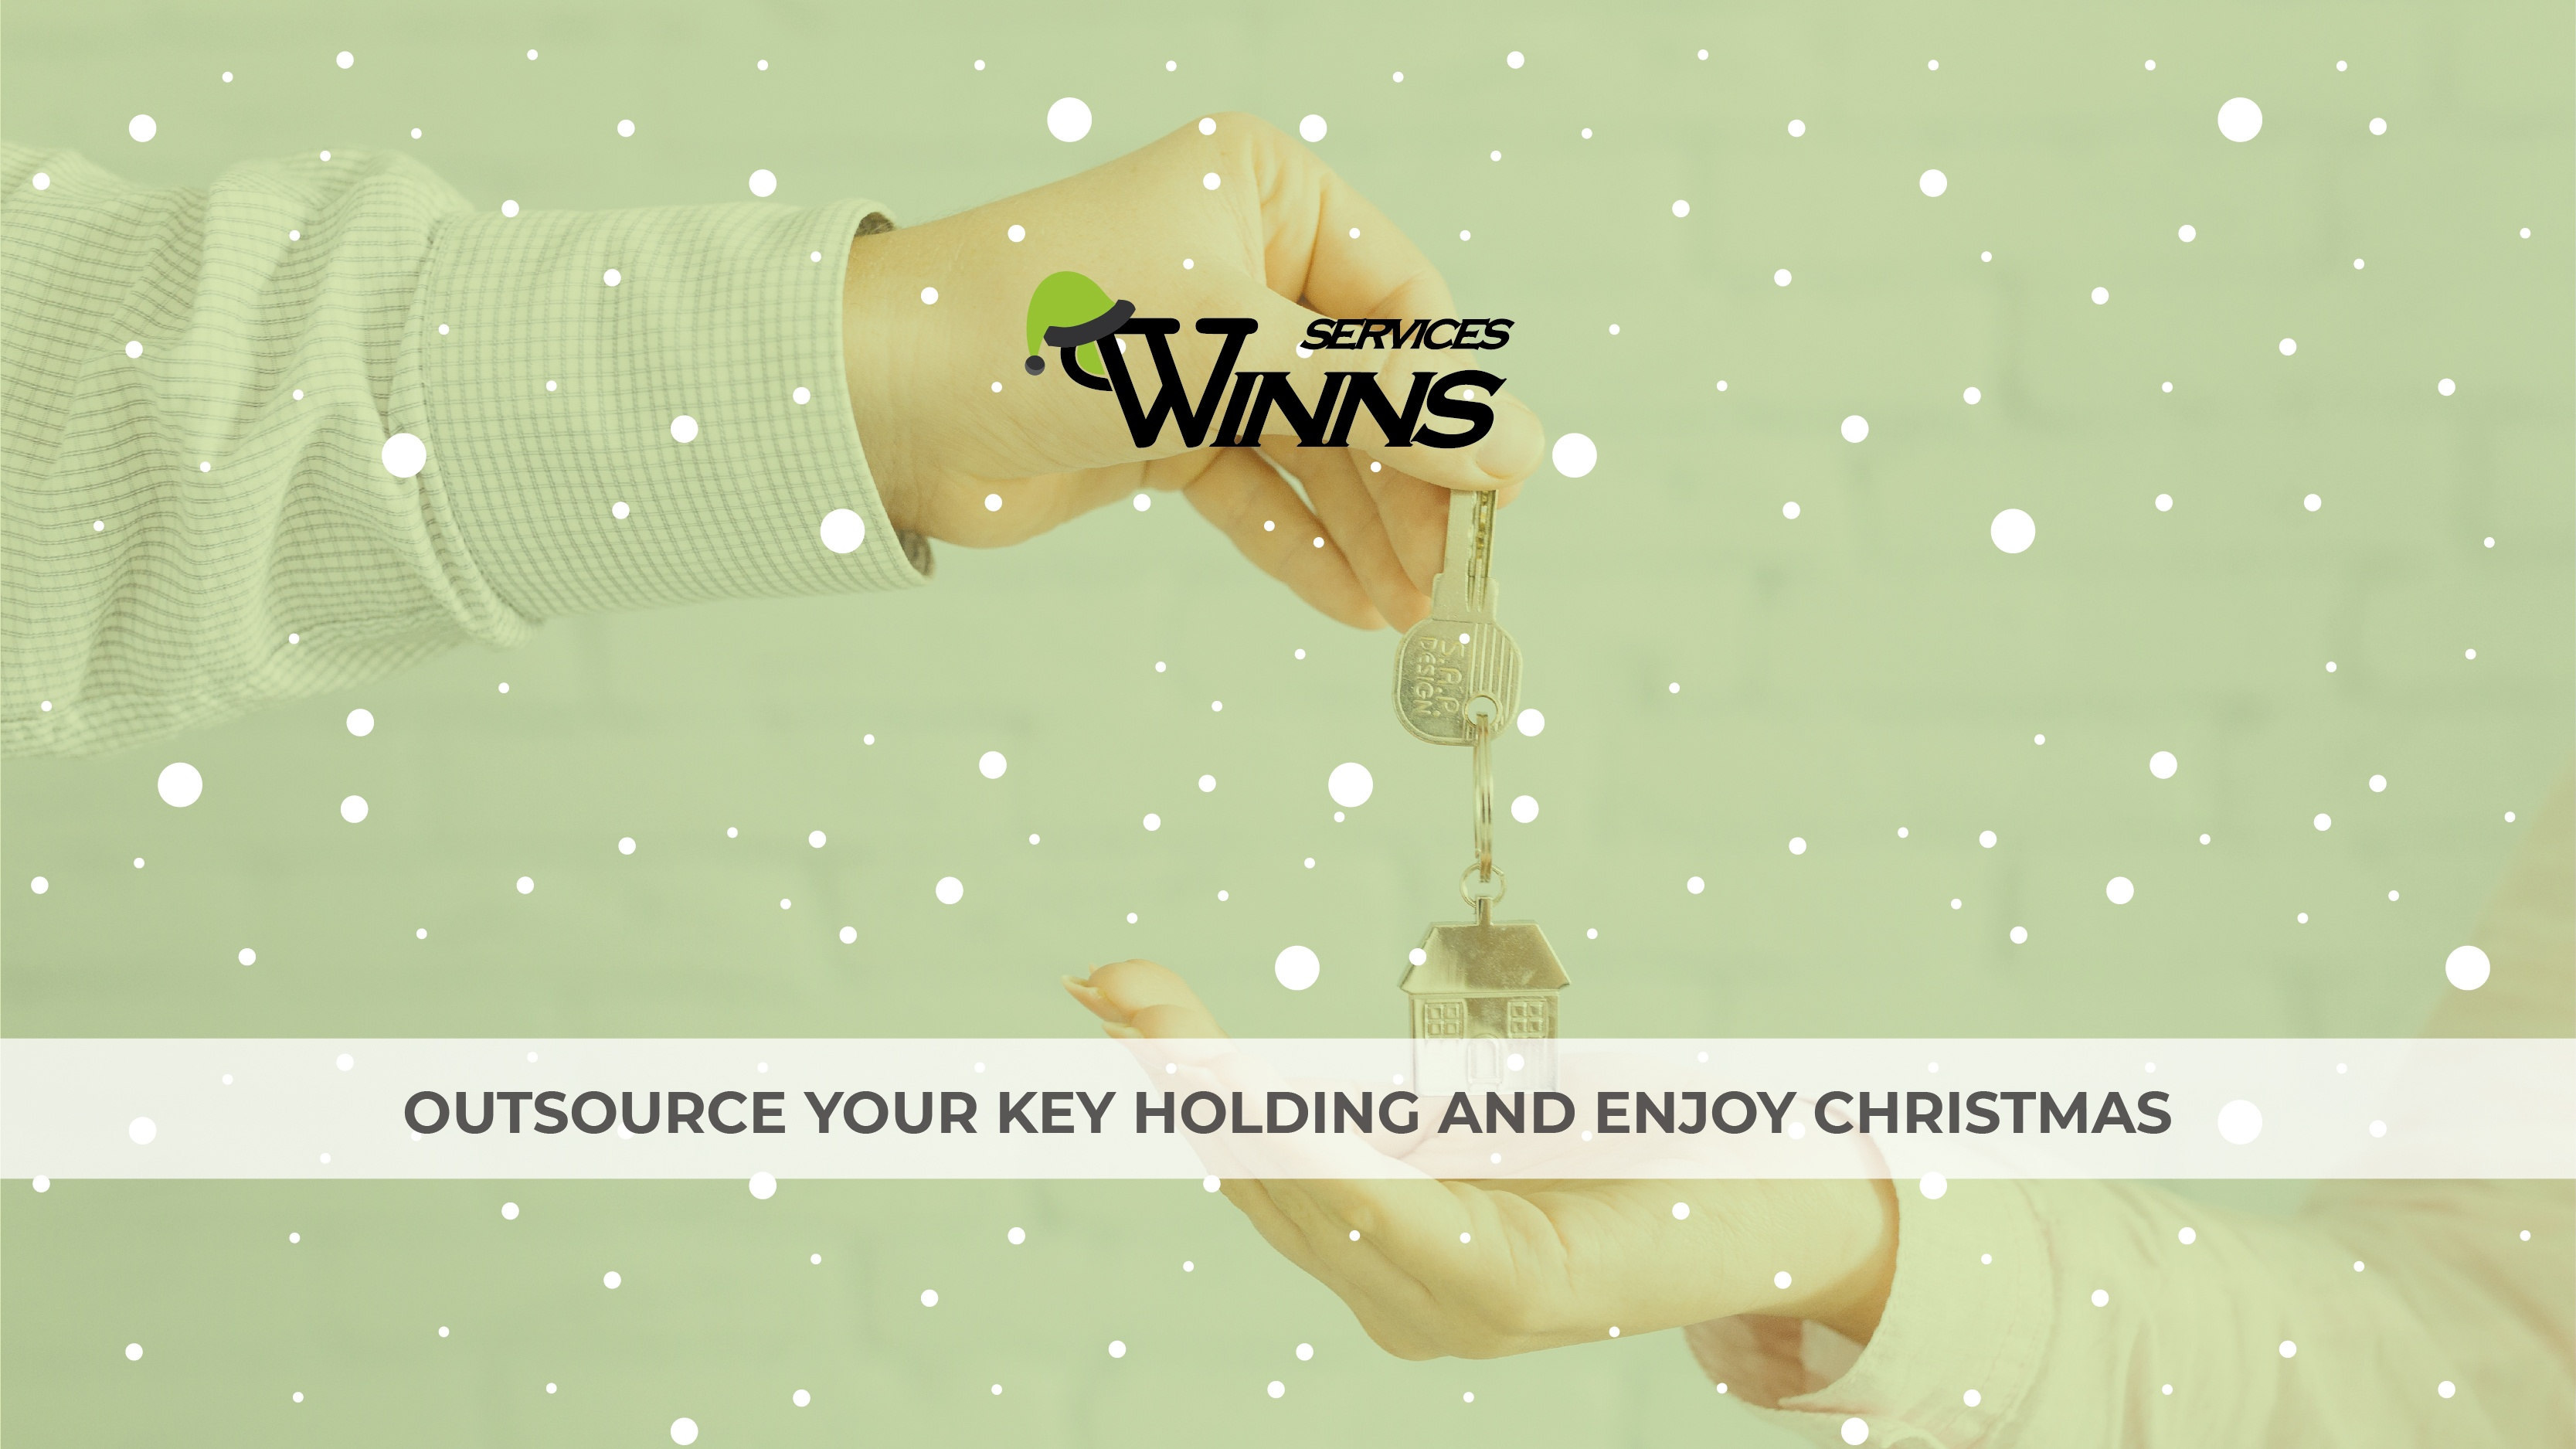 Security Advantages To Outsourcing Your Key Holding This Christmas